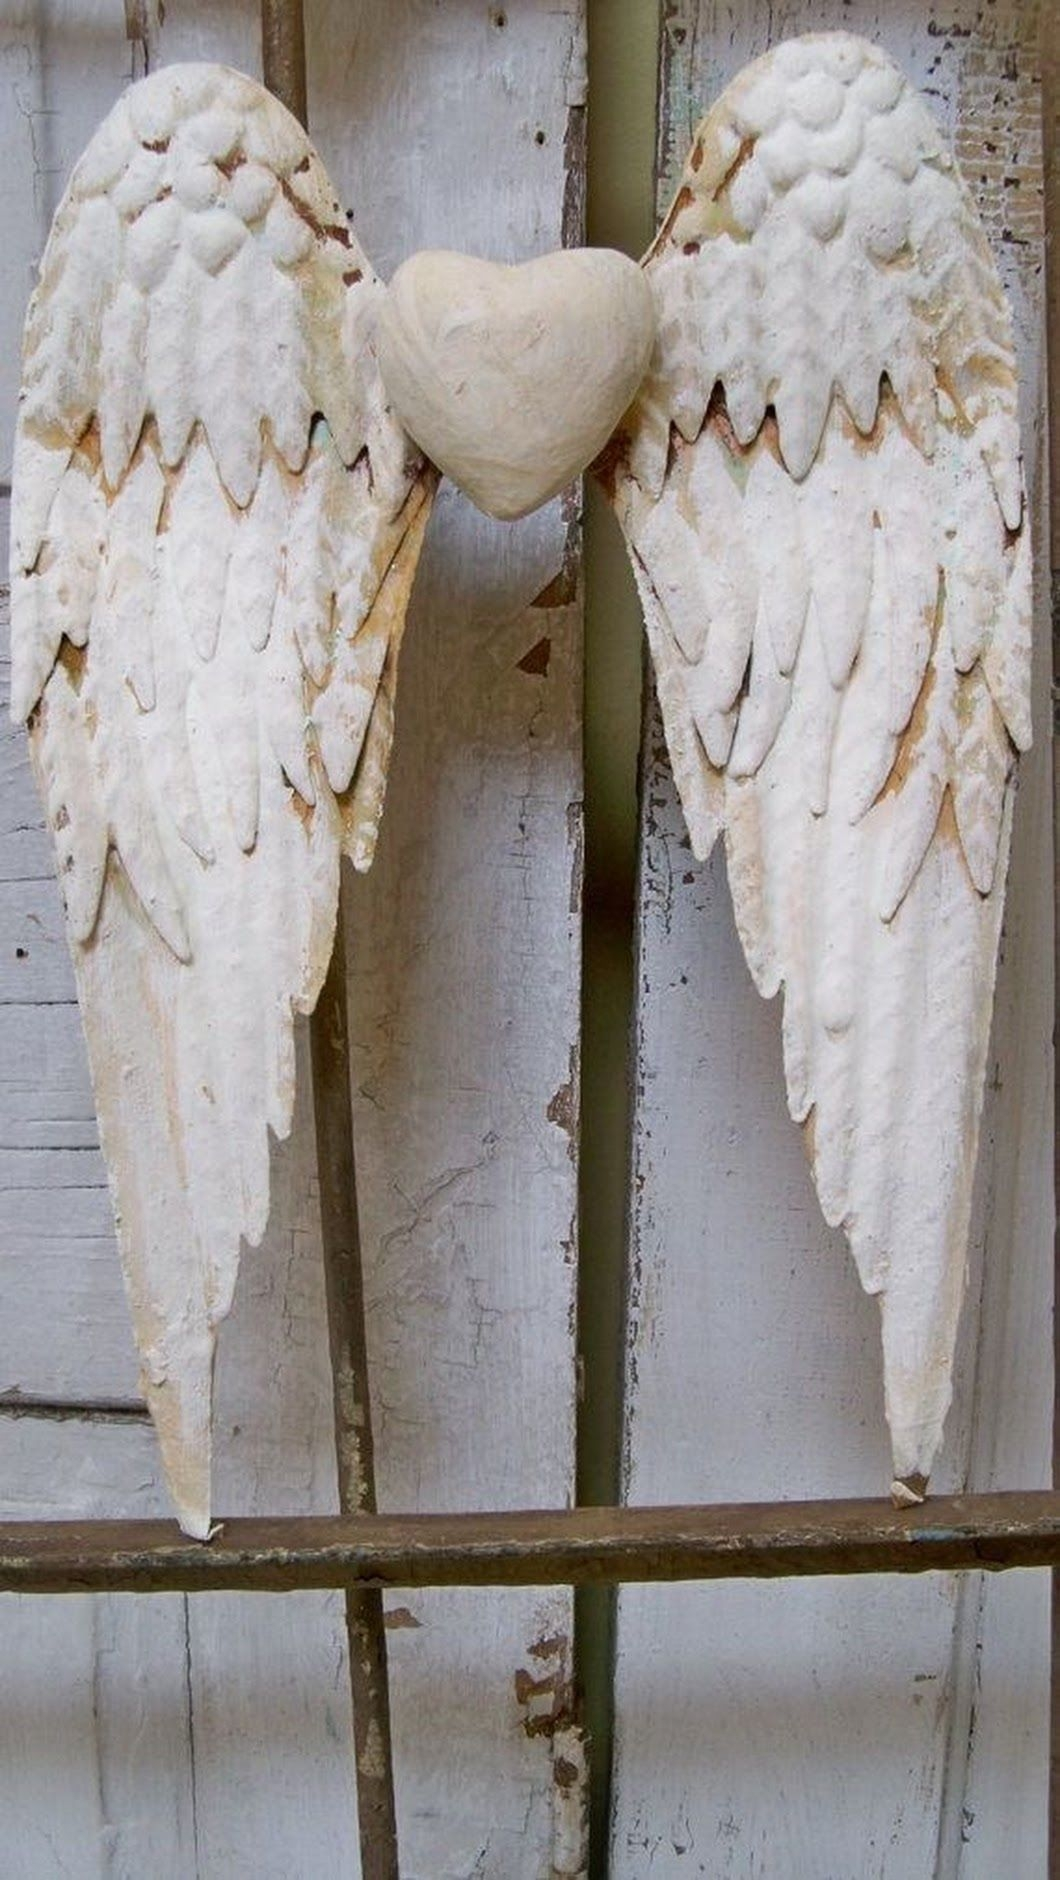 White wings rusty metal with heart